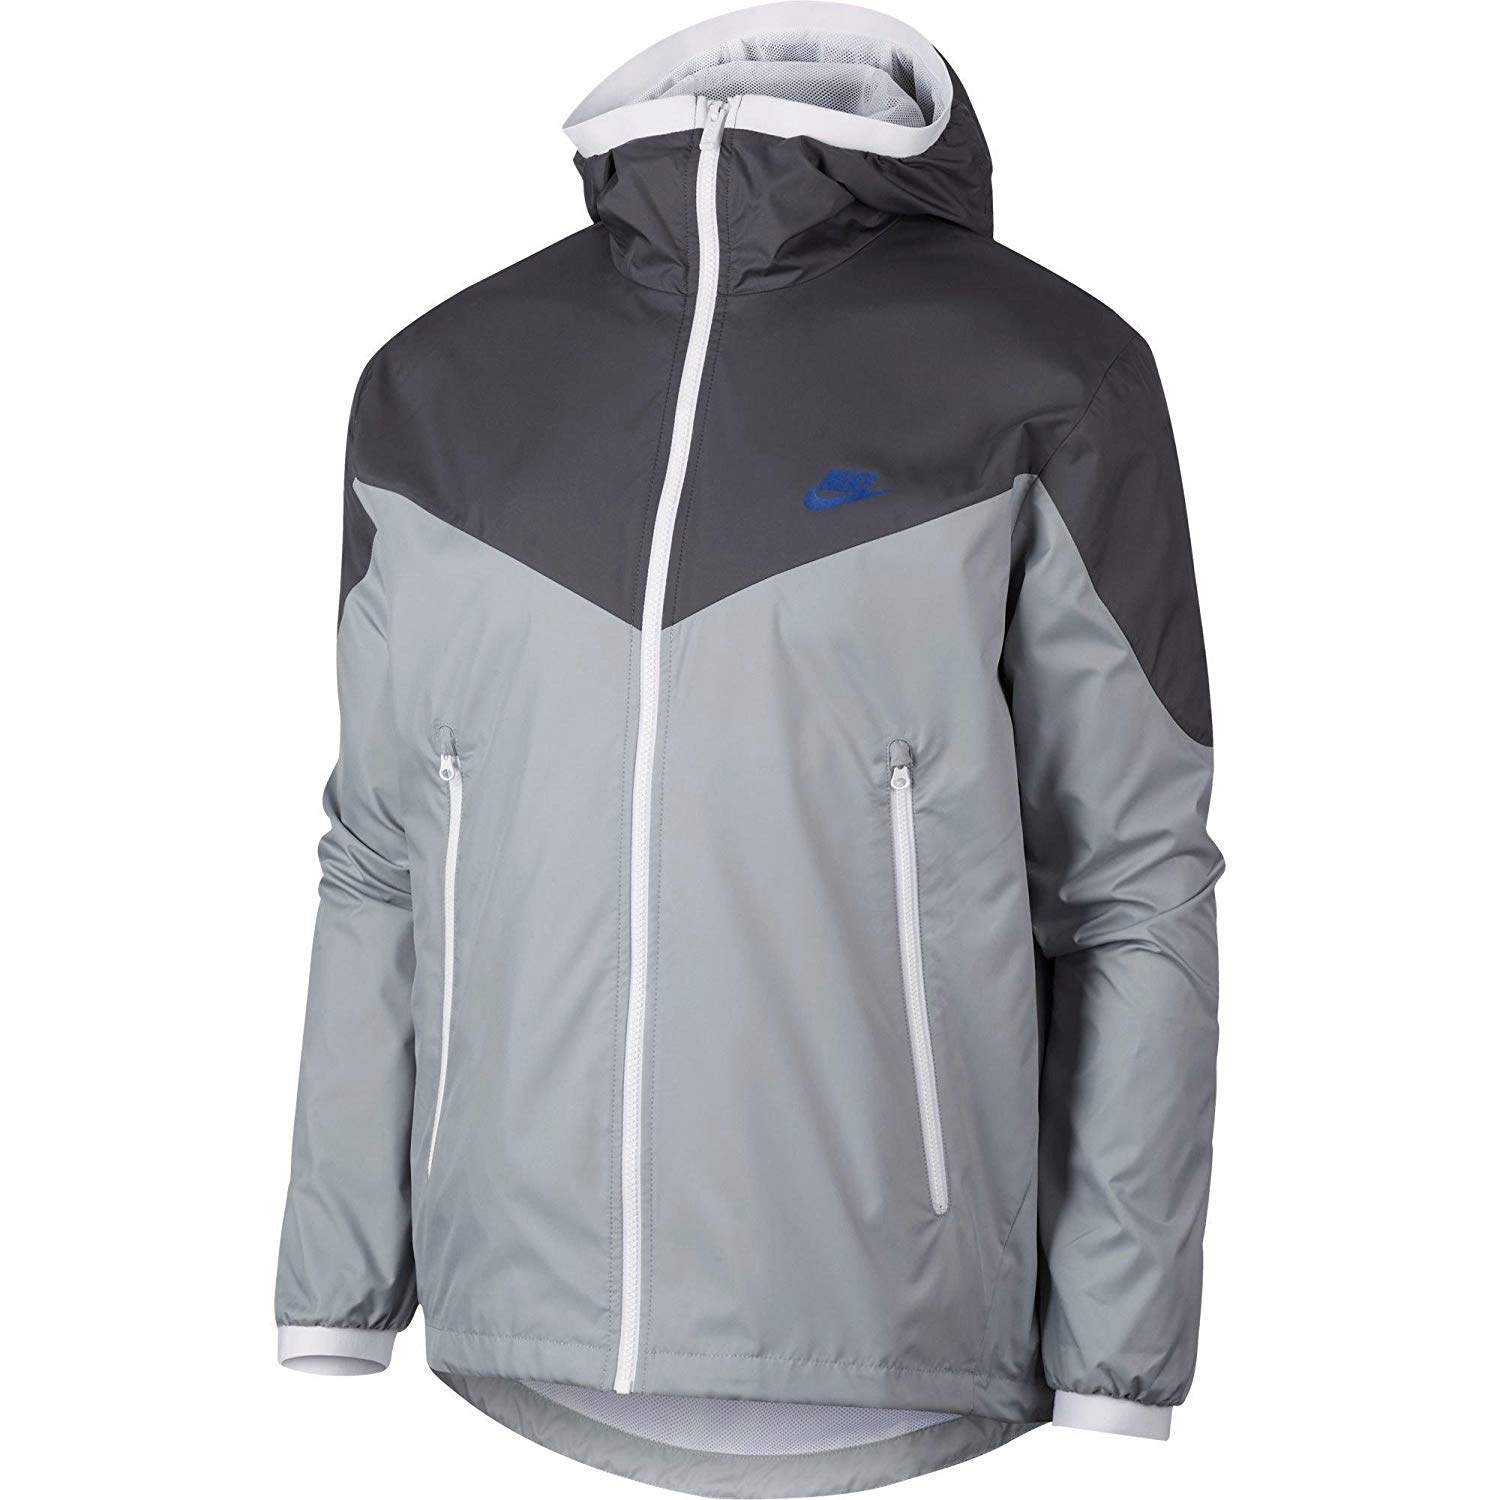 Nike Sportswear Windrunner Mens Track Jacket (XX-Large) by Nike